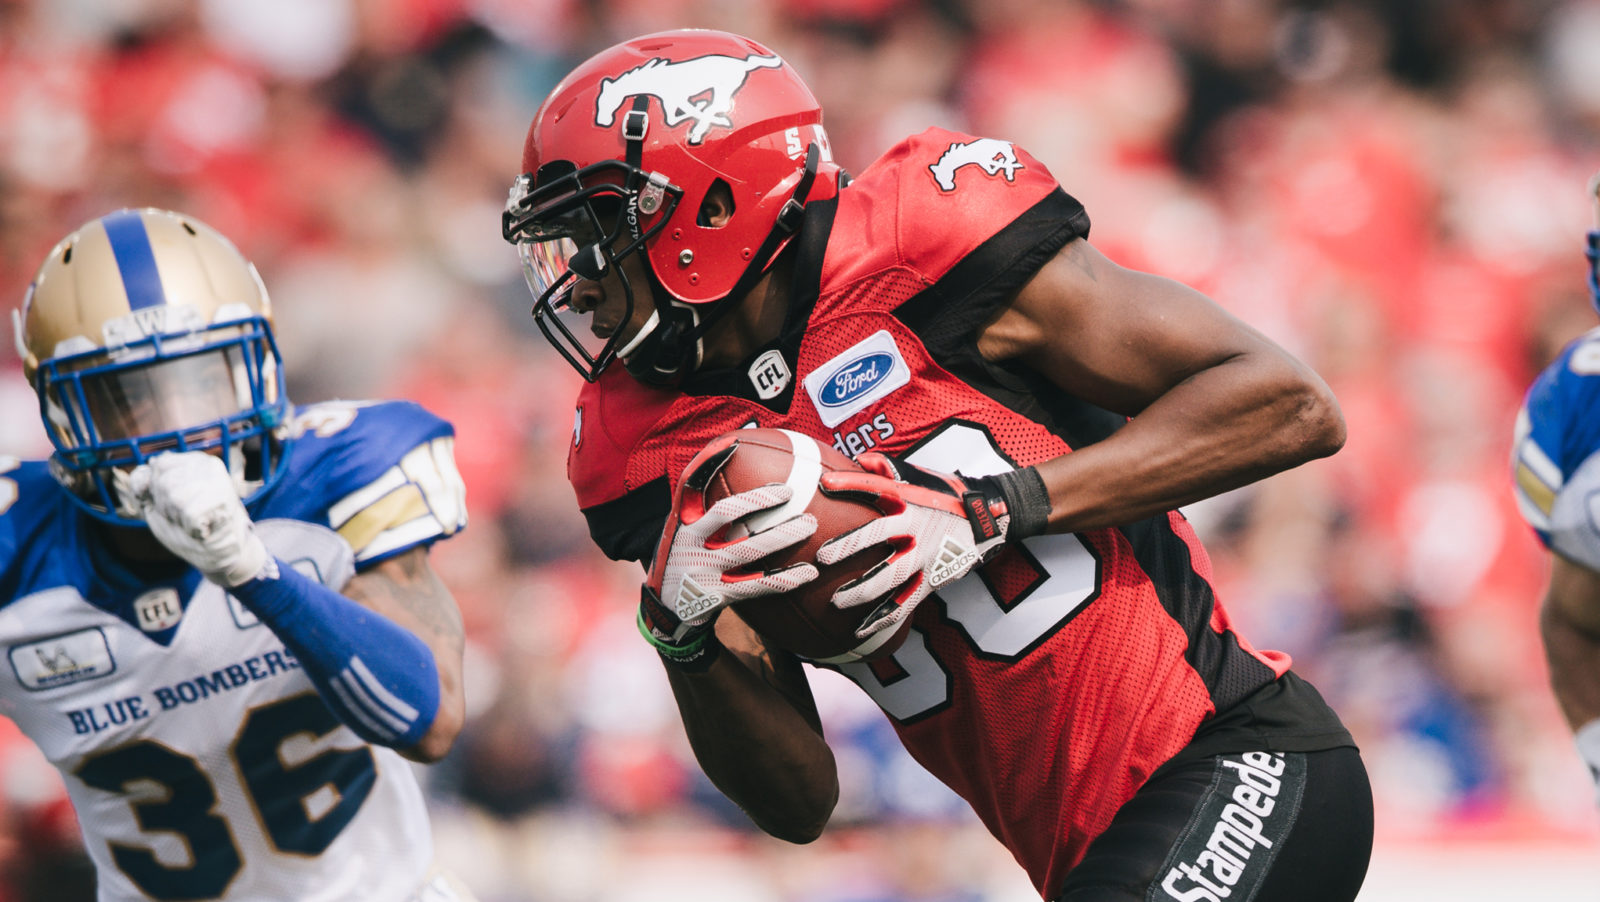 614e28c346d Stampeders sign Kamar Jorden to two-year extension - CFL.ca